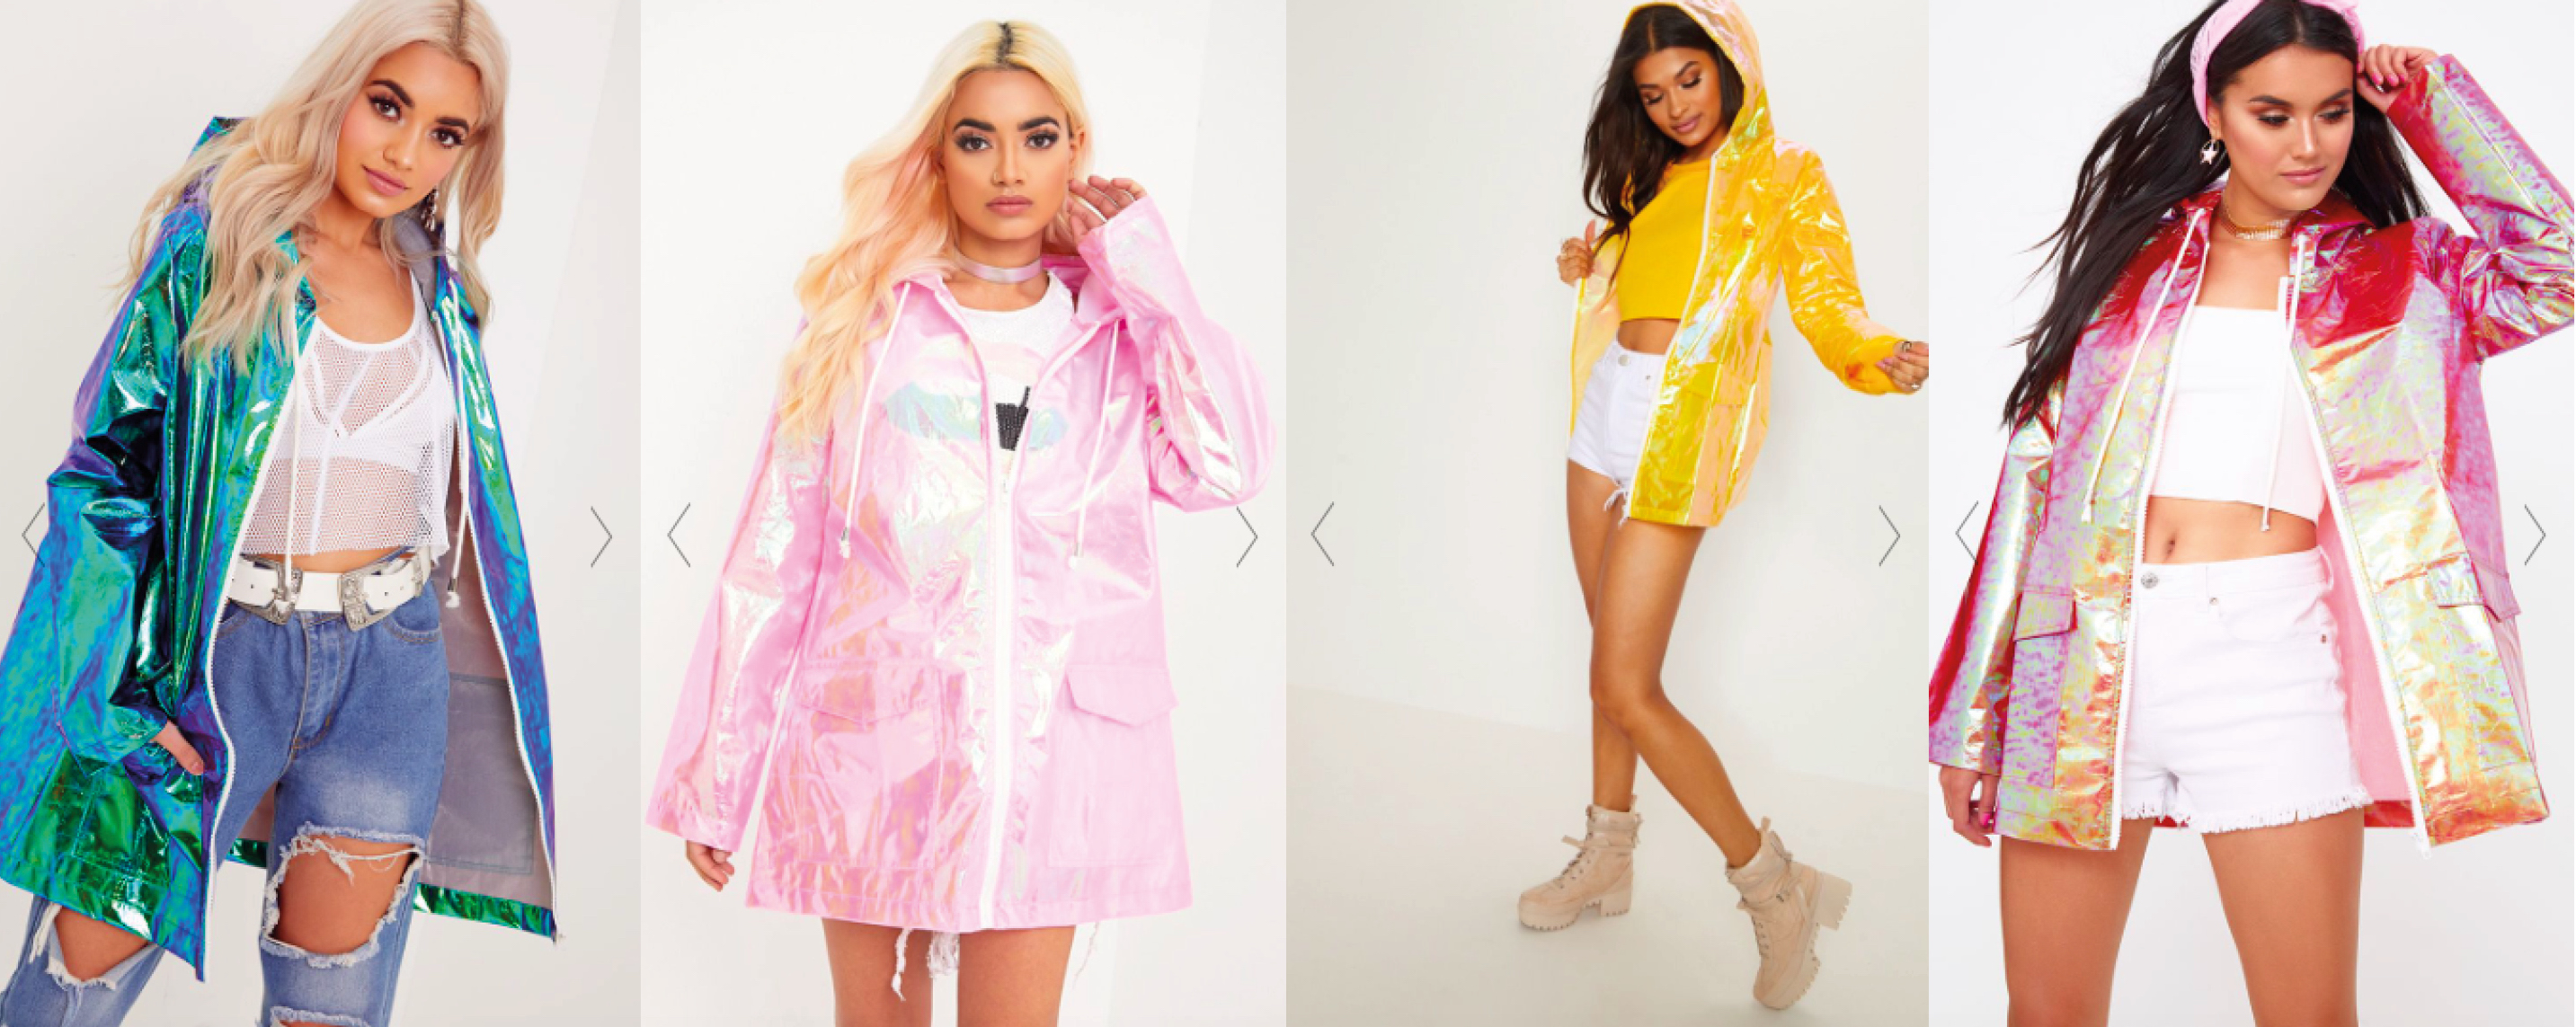 kway prettylittlethings colors